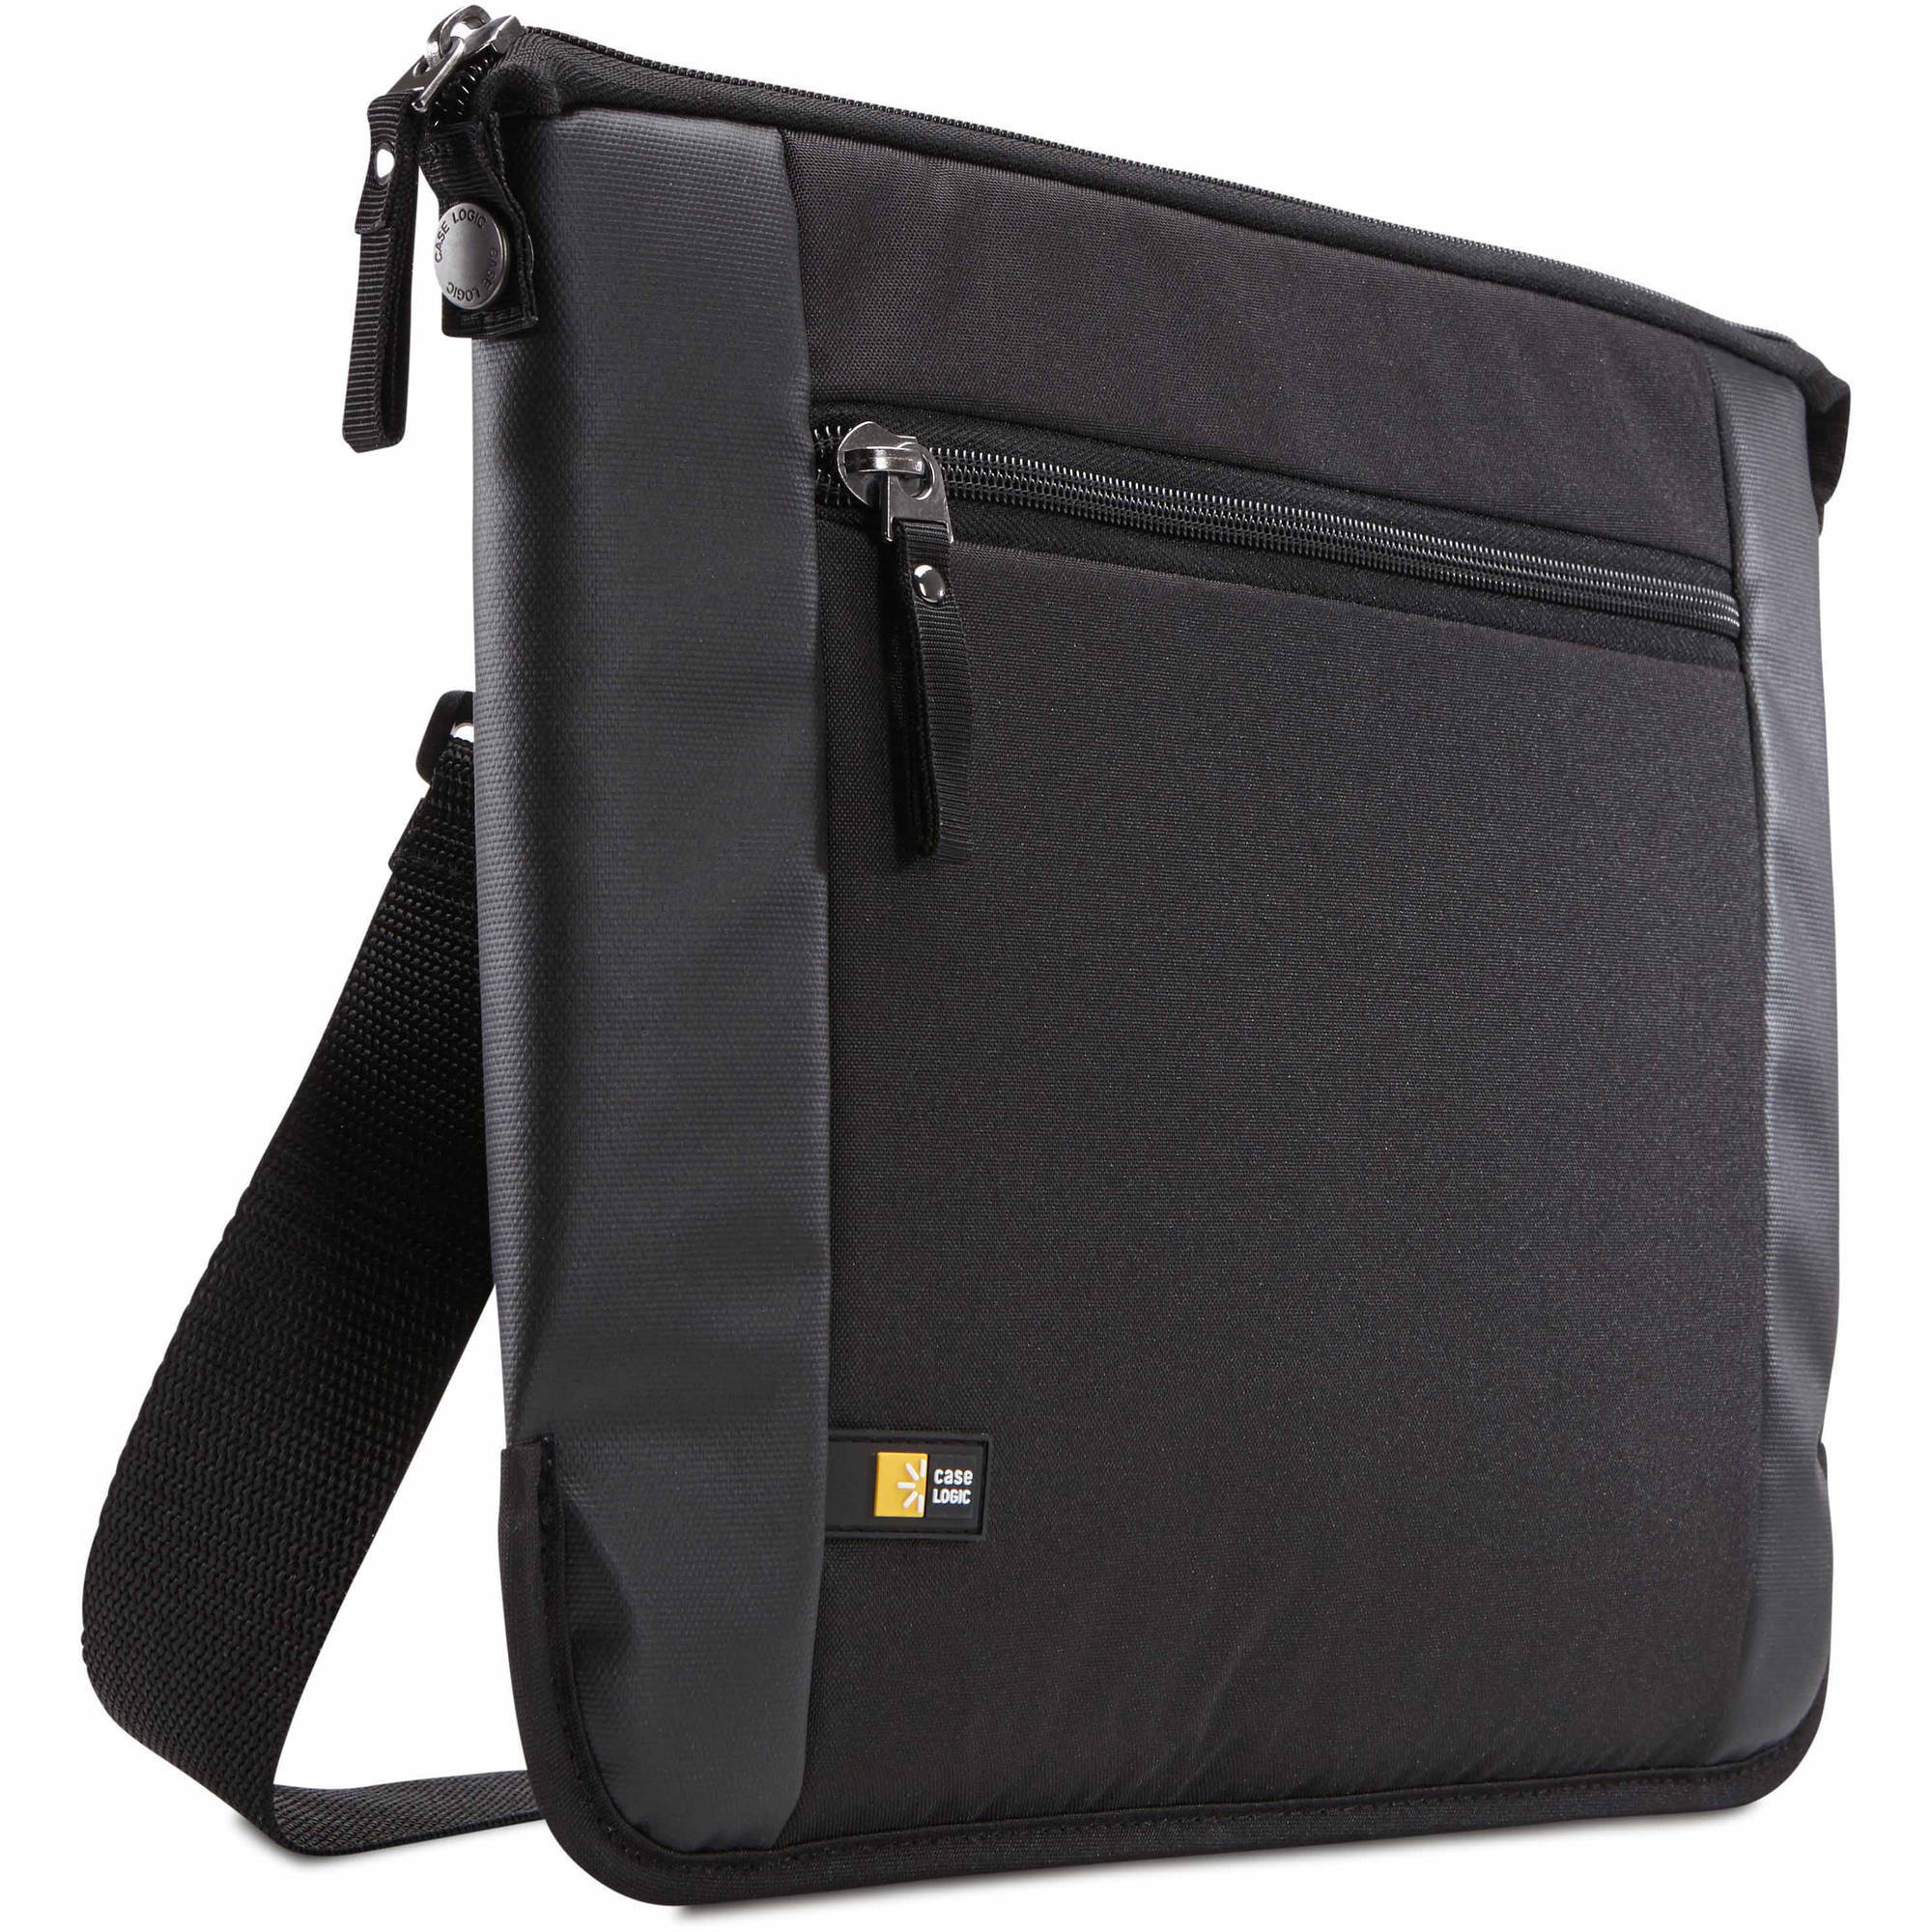 "Case Logic INT-111 Intrata Laptop Bag for 11.6"" Laptops, With Removable Carrying Strap"